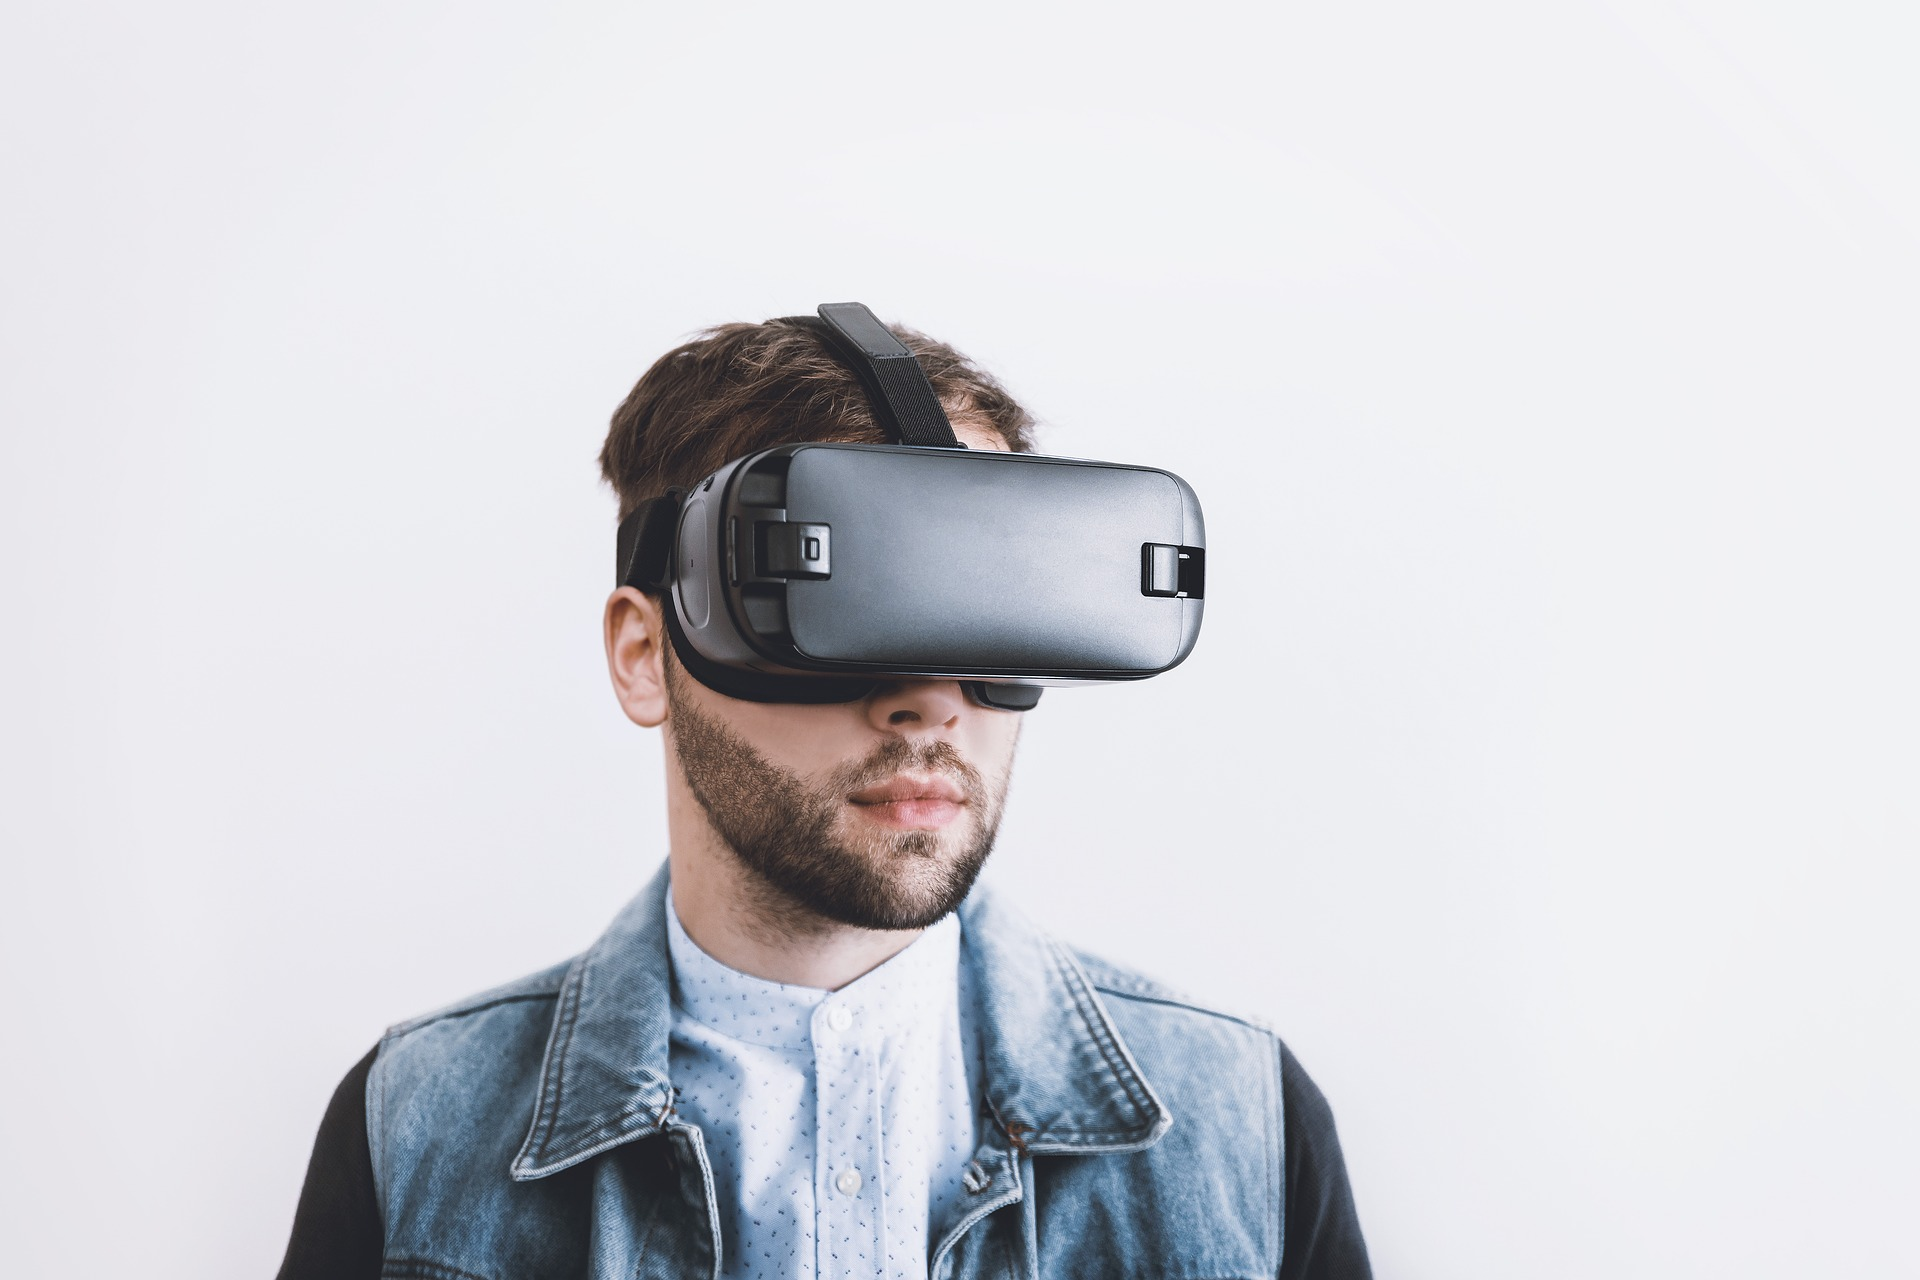 Tundra Tracker, which is compatible with SteamVR will launch Kickstarter on 29 March 2021